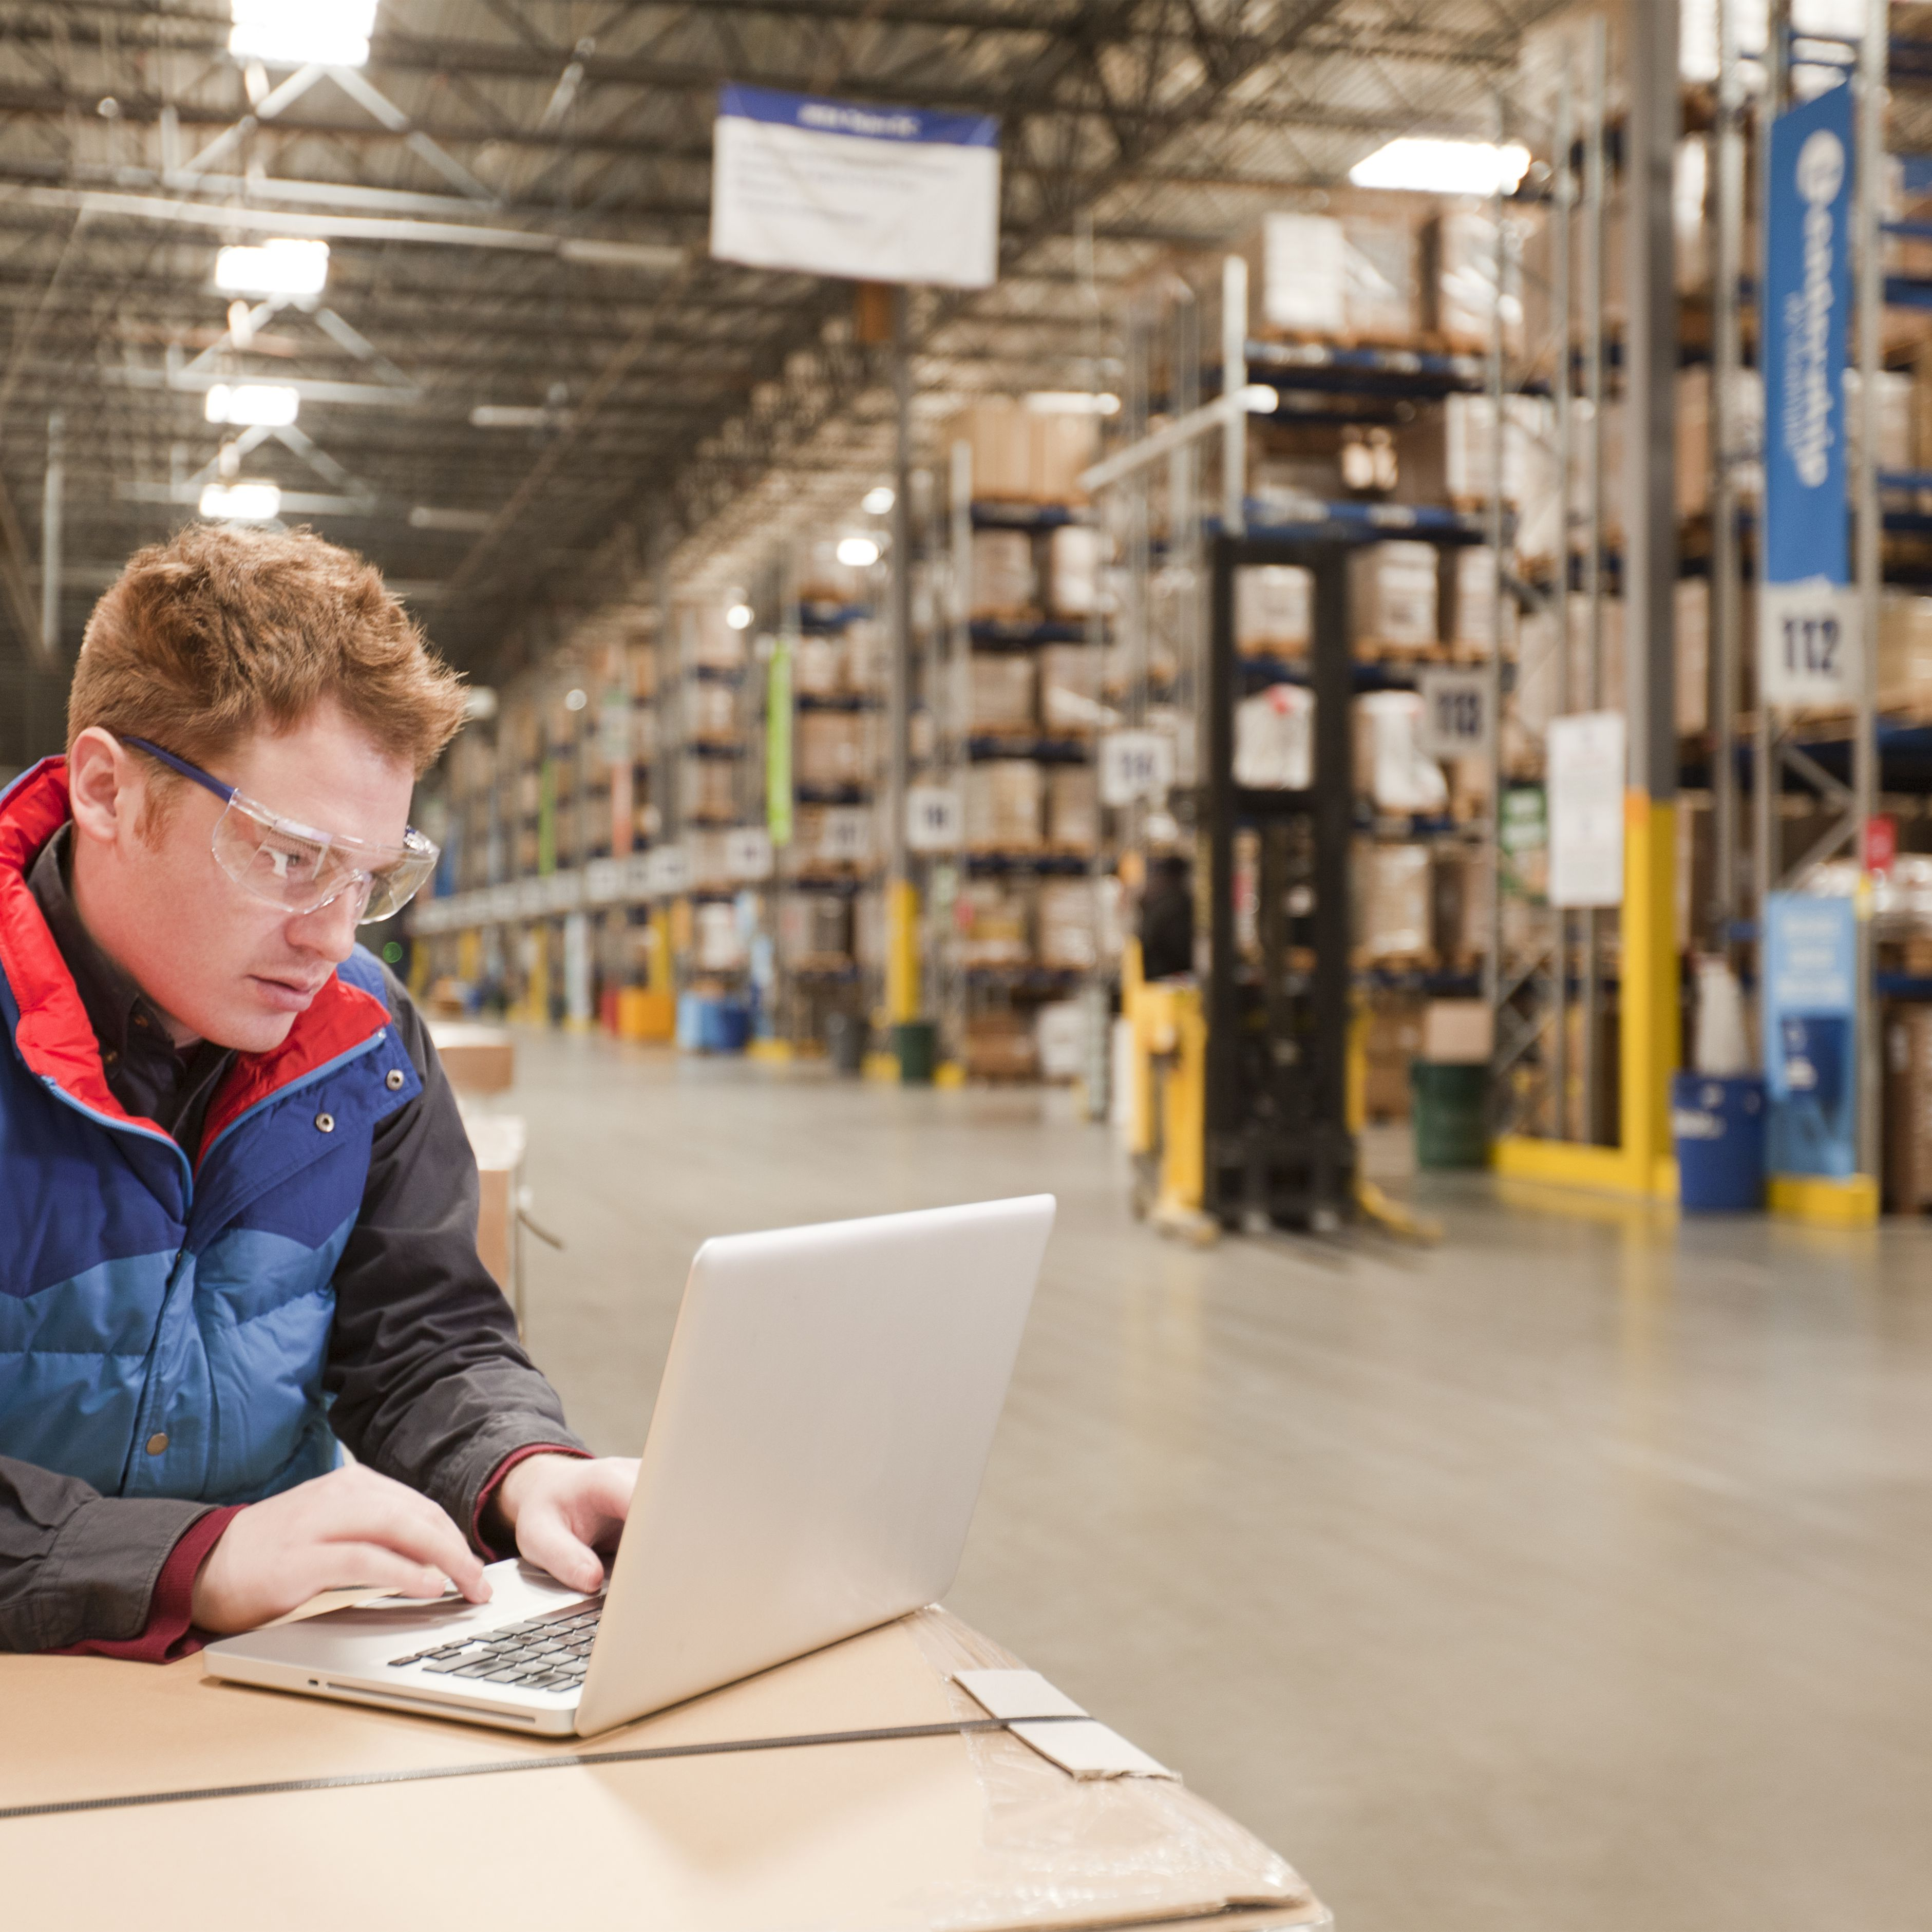 FIFO or LIFO Inventory Methods - Which is Better?